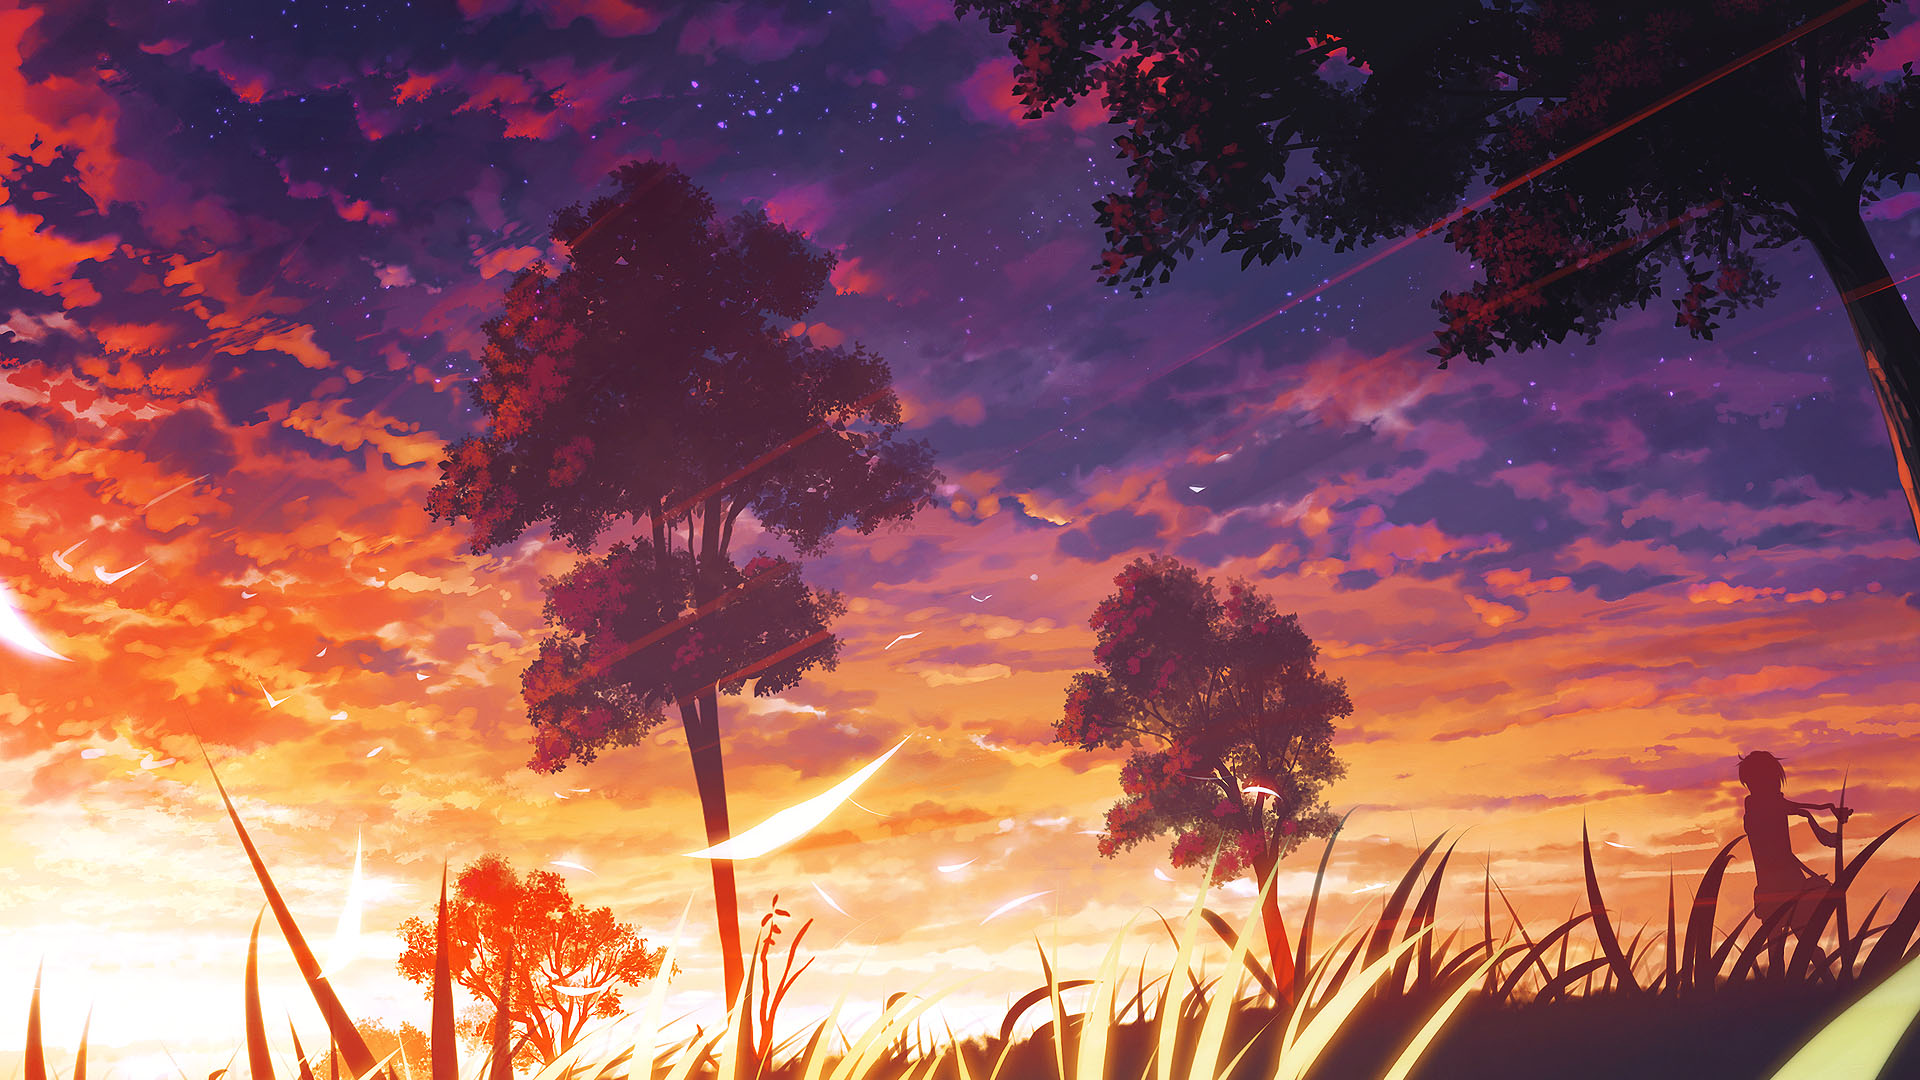 1000+ images about Anime Landscapes on Pinterest | Original art